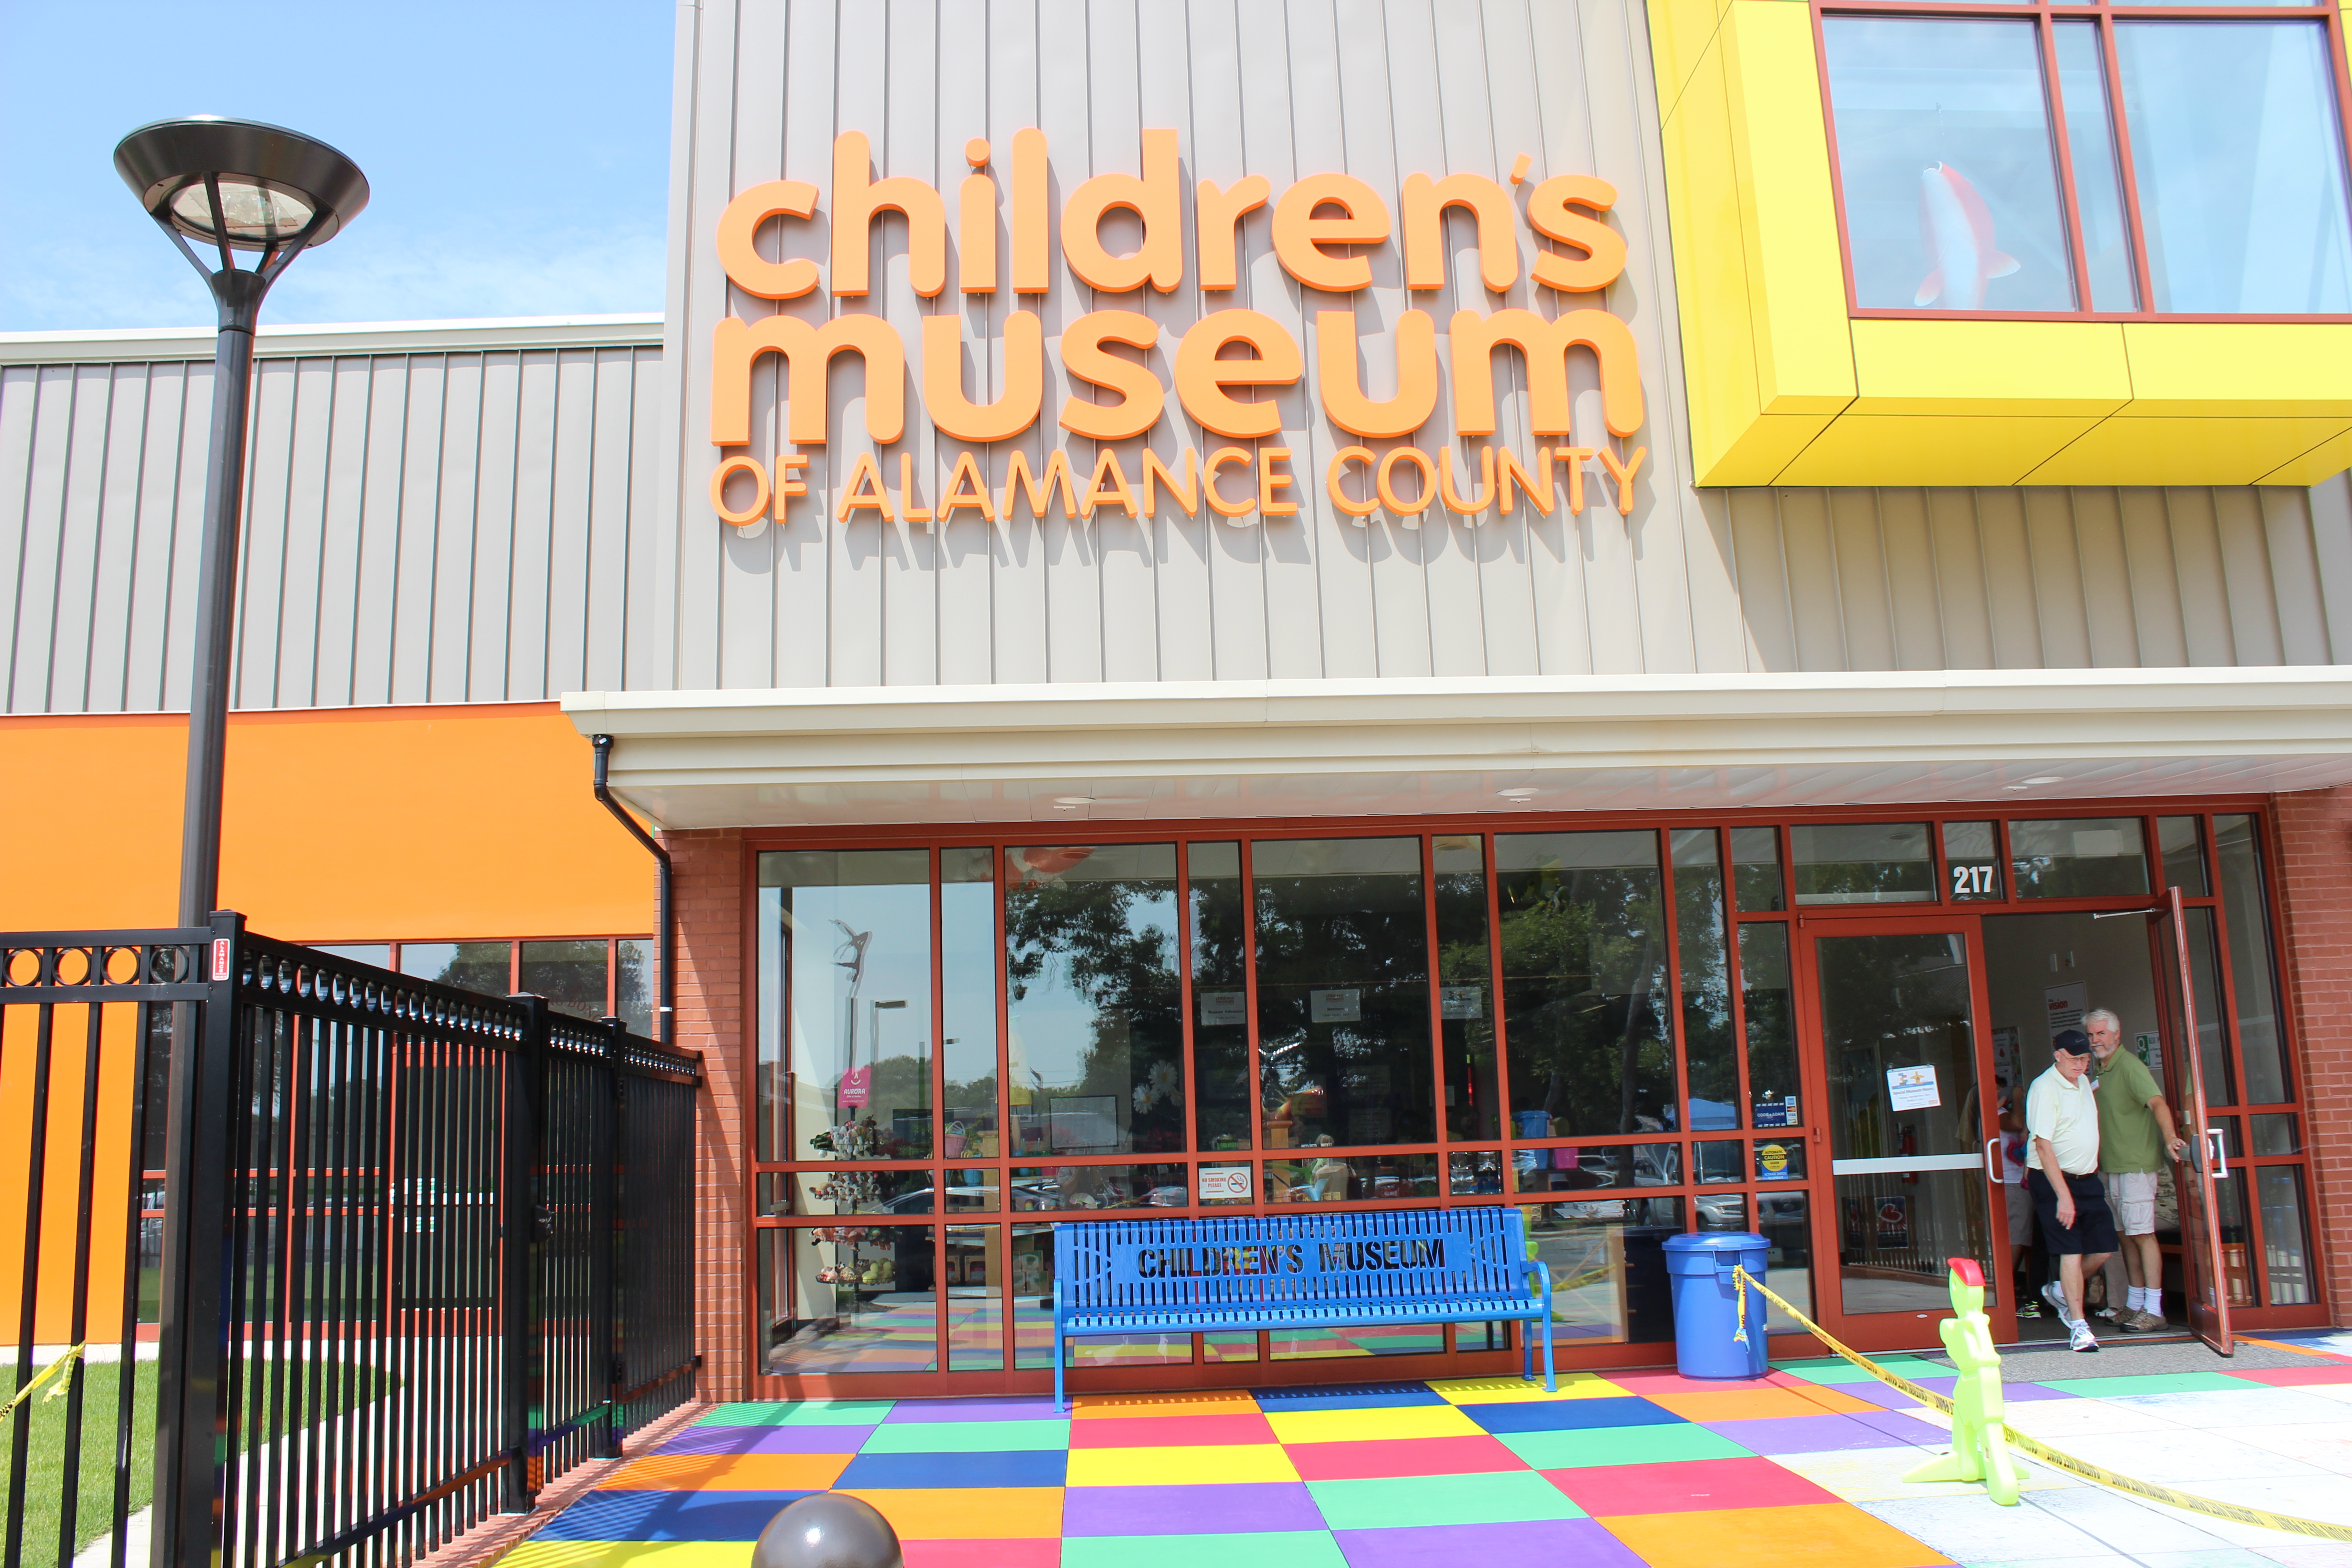 Day Trip to Children's Museum of Alamance County